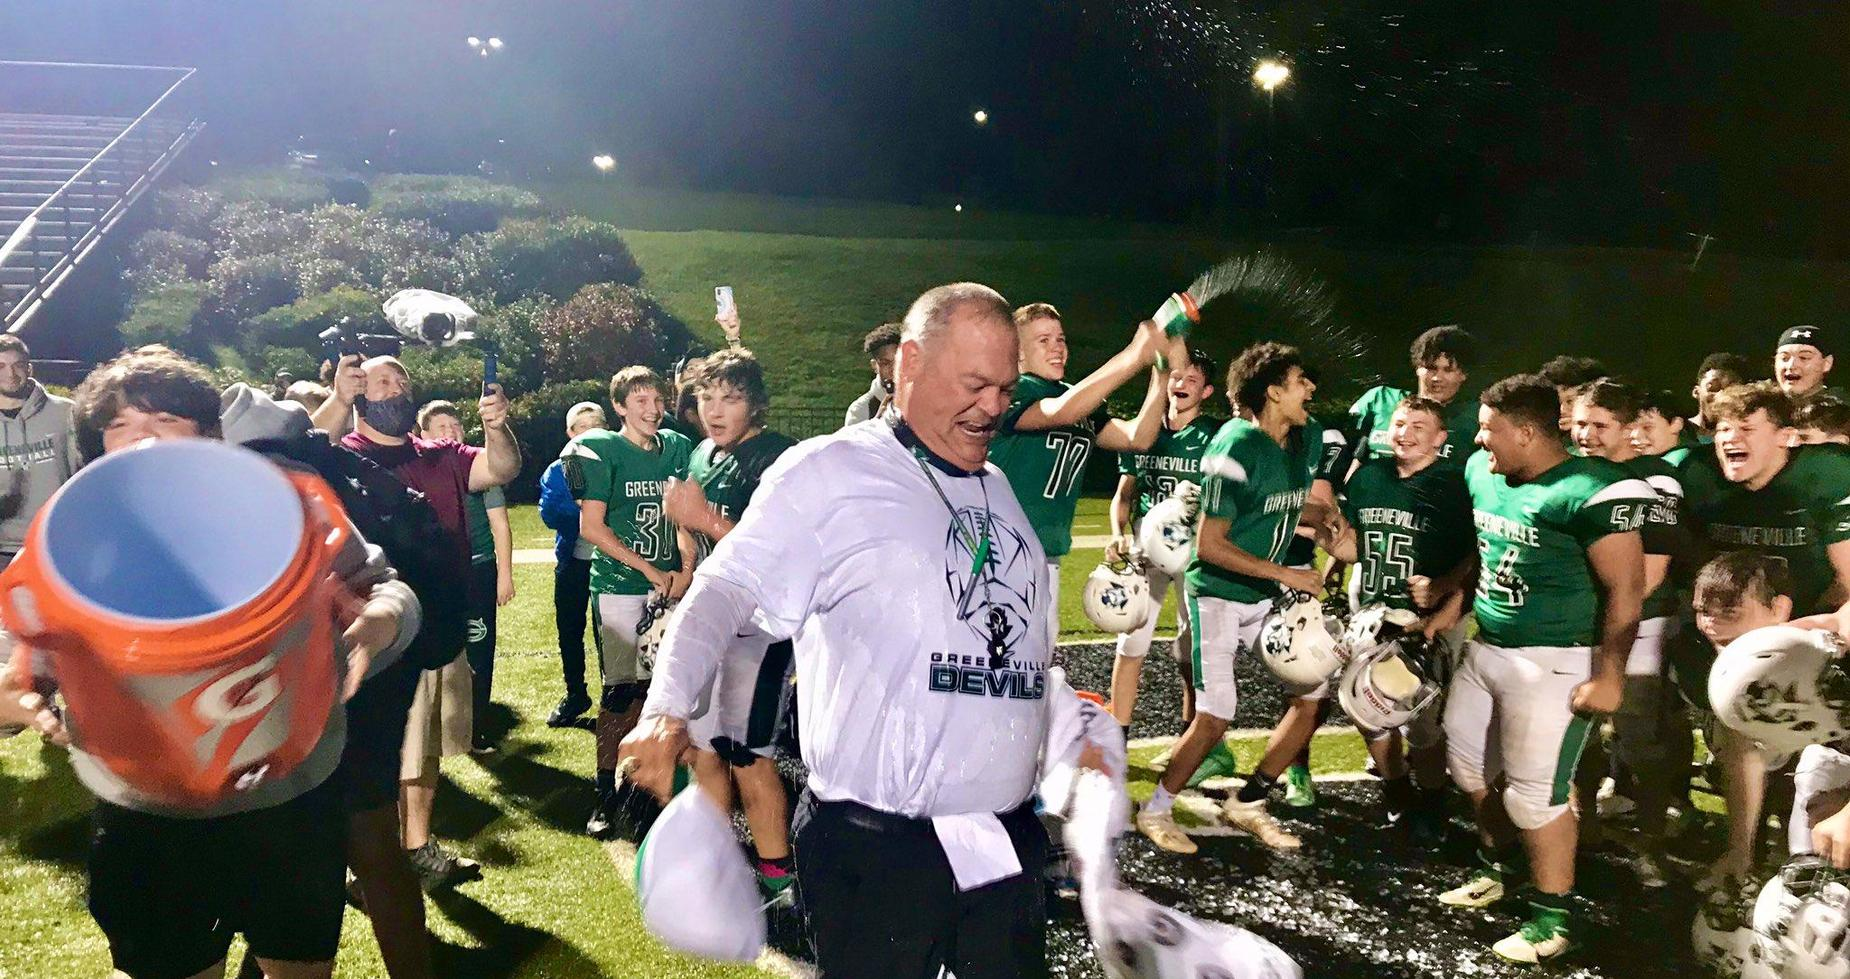 coach gets gatorade dumped on him after win